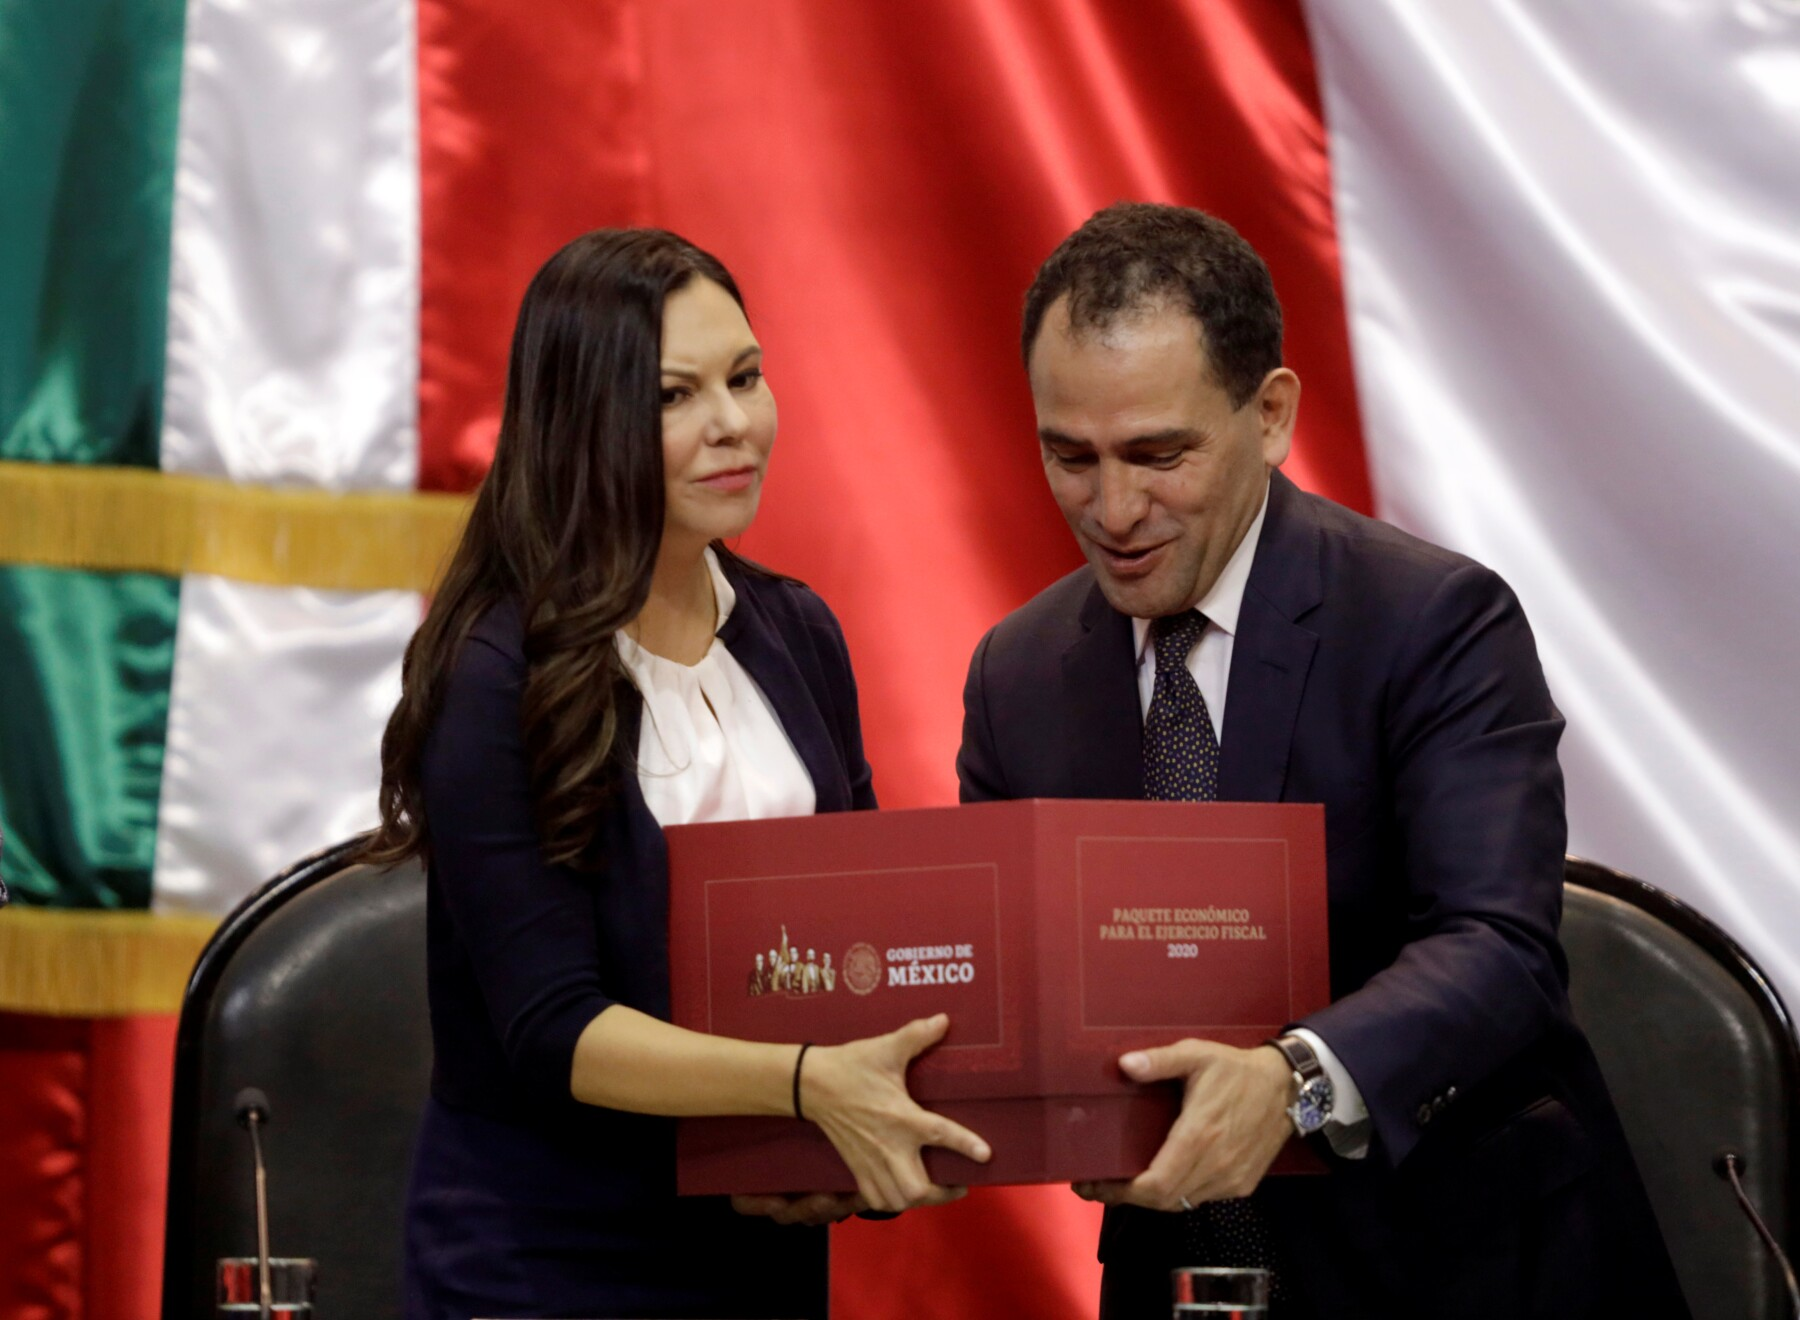 Mexico's Finance Minister Arturo Herrera presents the 2020 national budget to Laura Angelica Rojas president of the Lower House of Congress at the Congress building in Mexico City